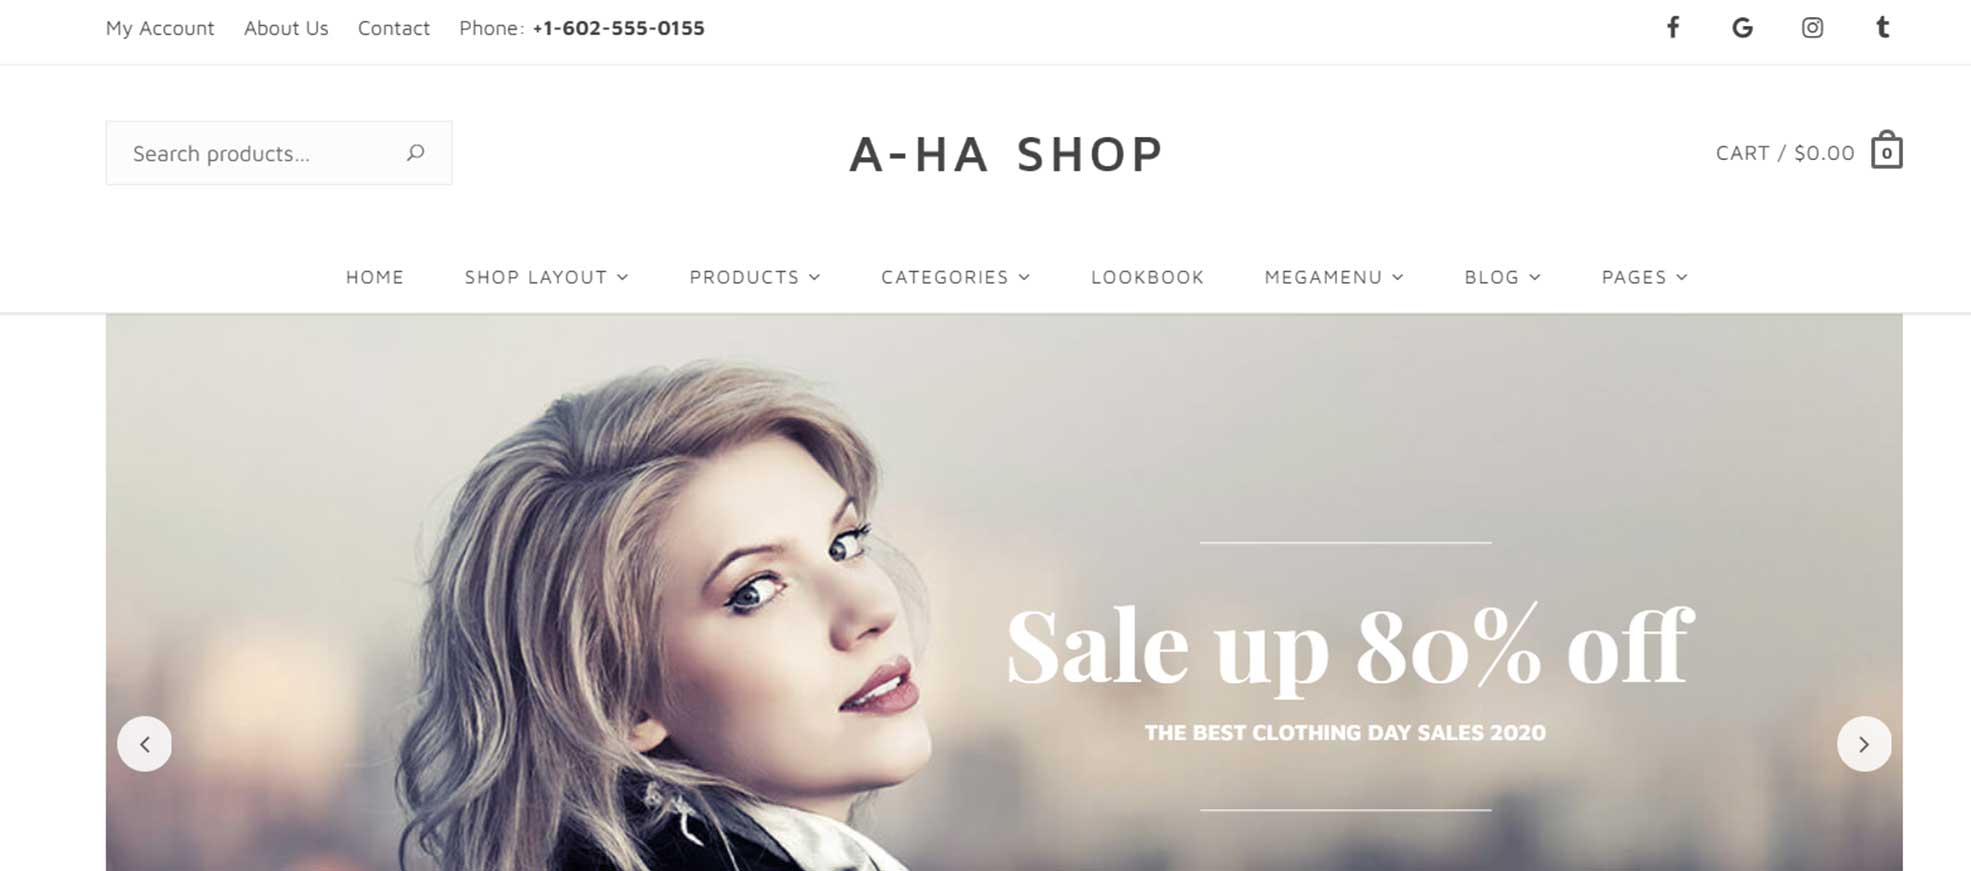 Aha - Shop WordPress Theme for Fashion Clothing Store